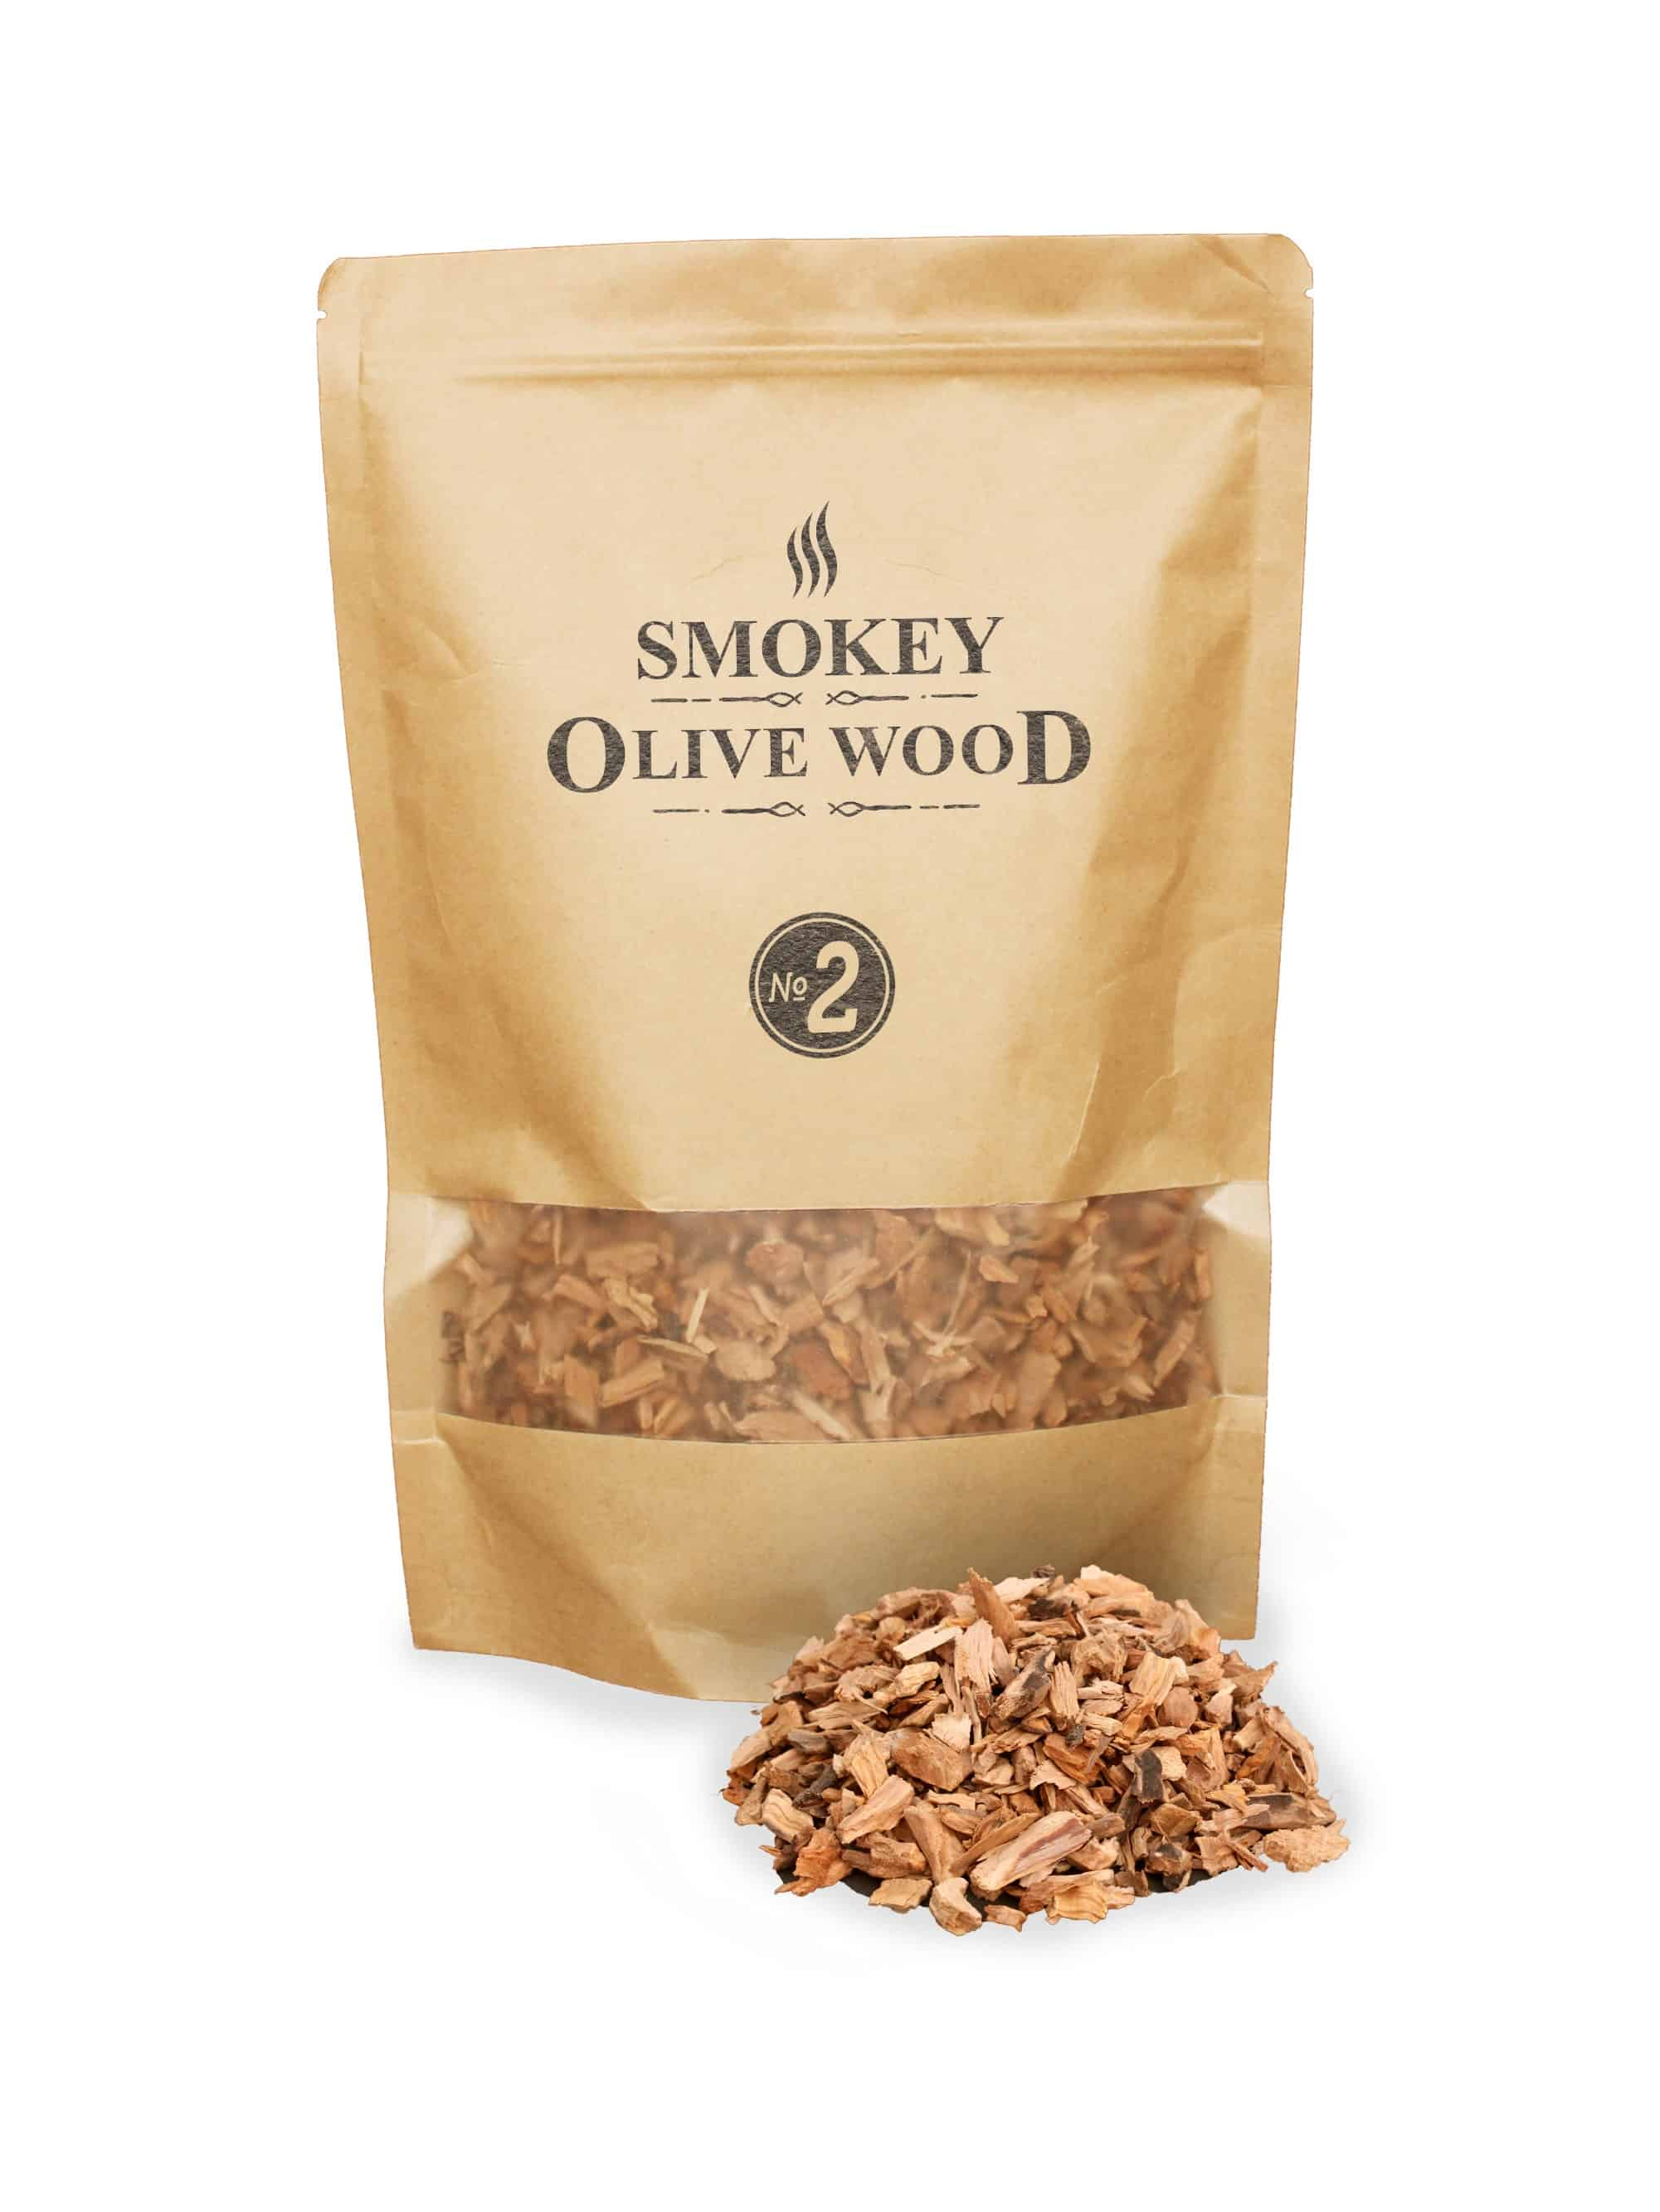 SOW Olive Wood Smoking Chips Nº2